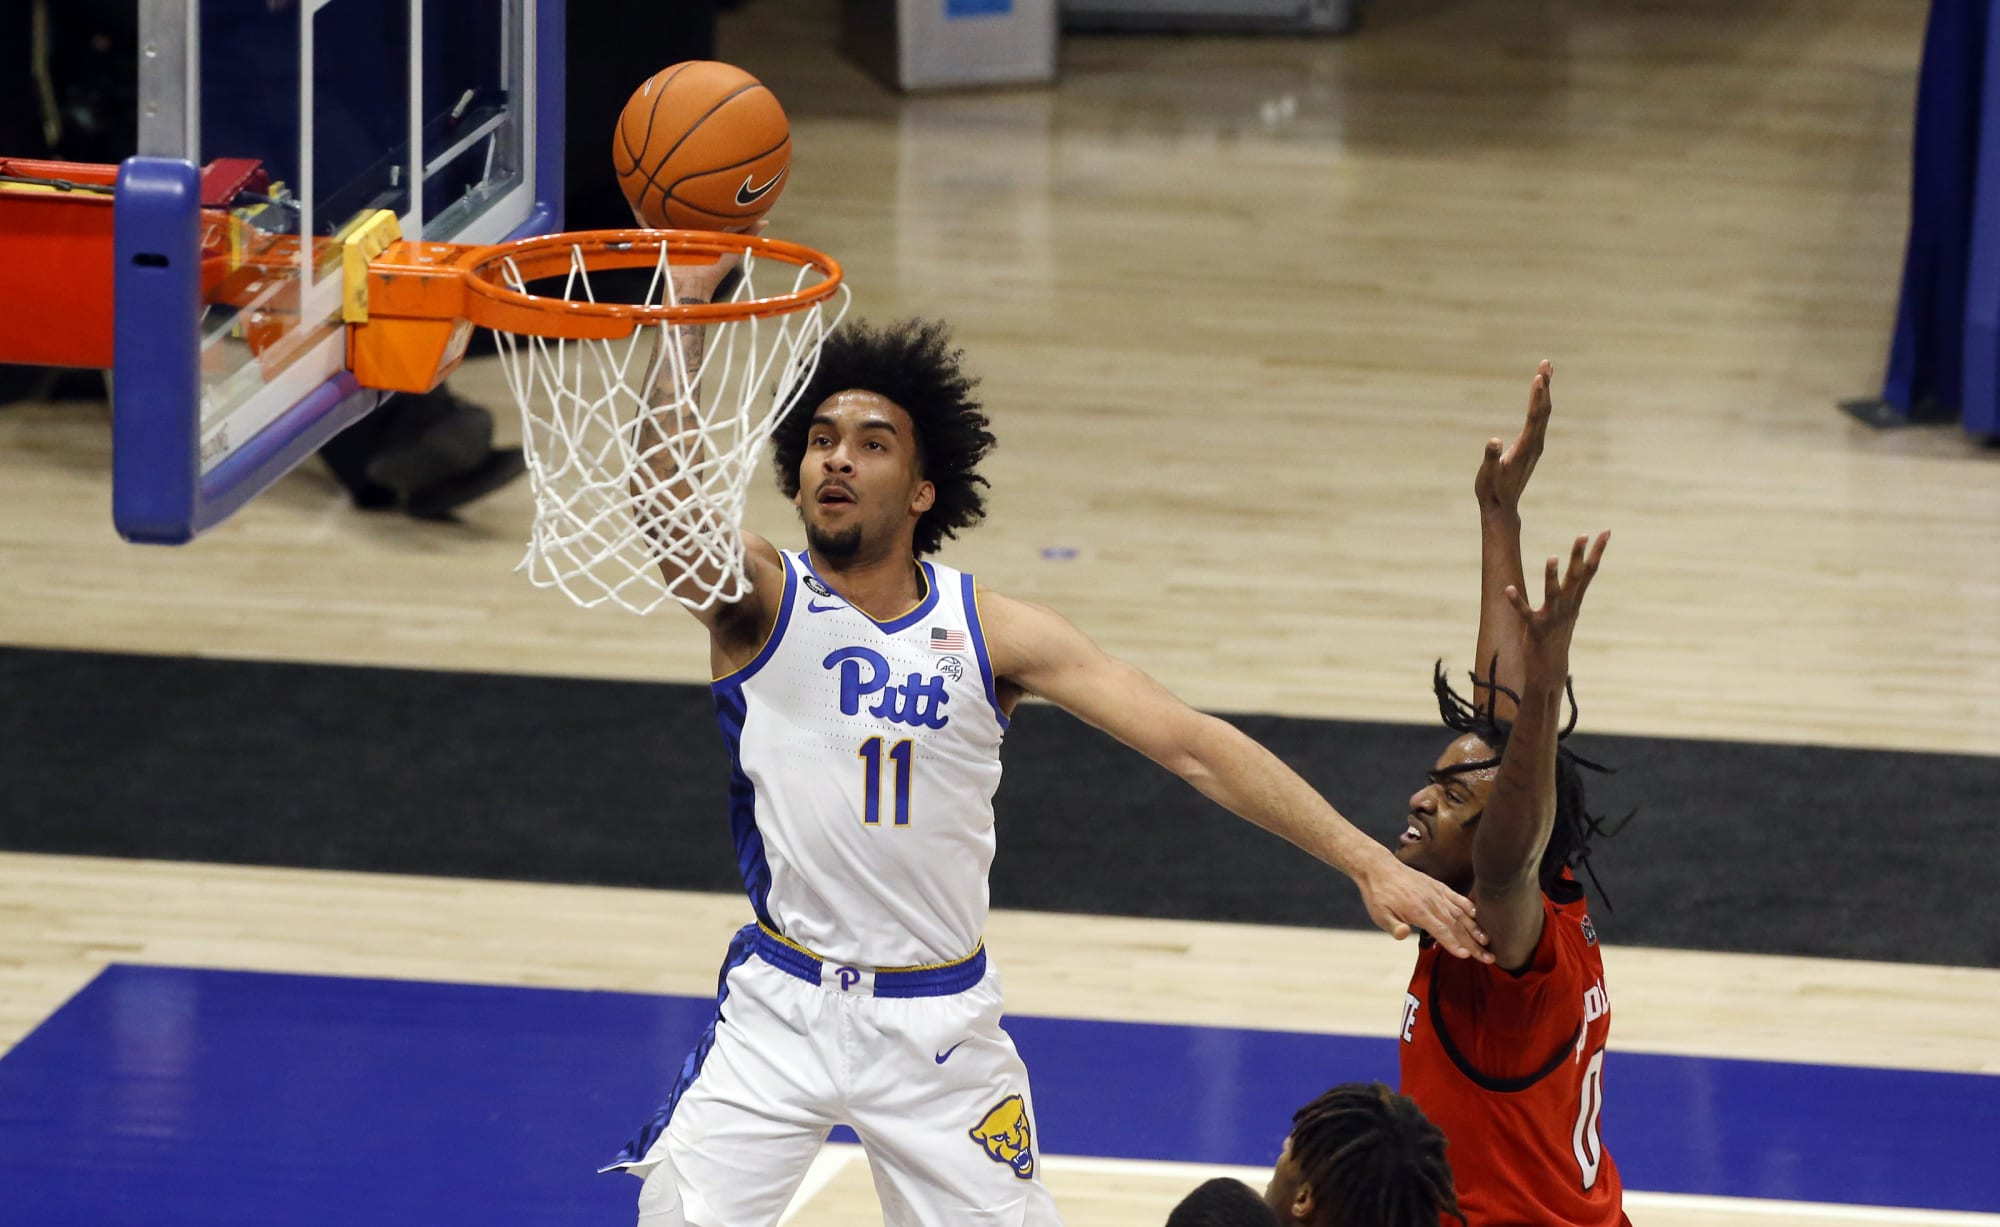 Toronto Raptors: UDFA Justin Champagnie offers tons of potential